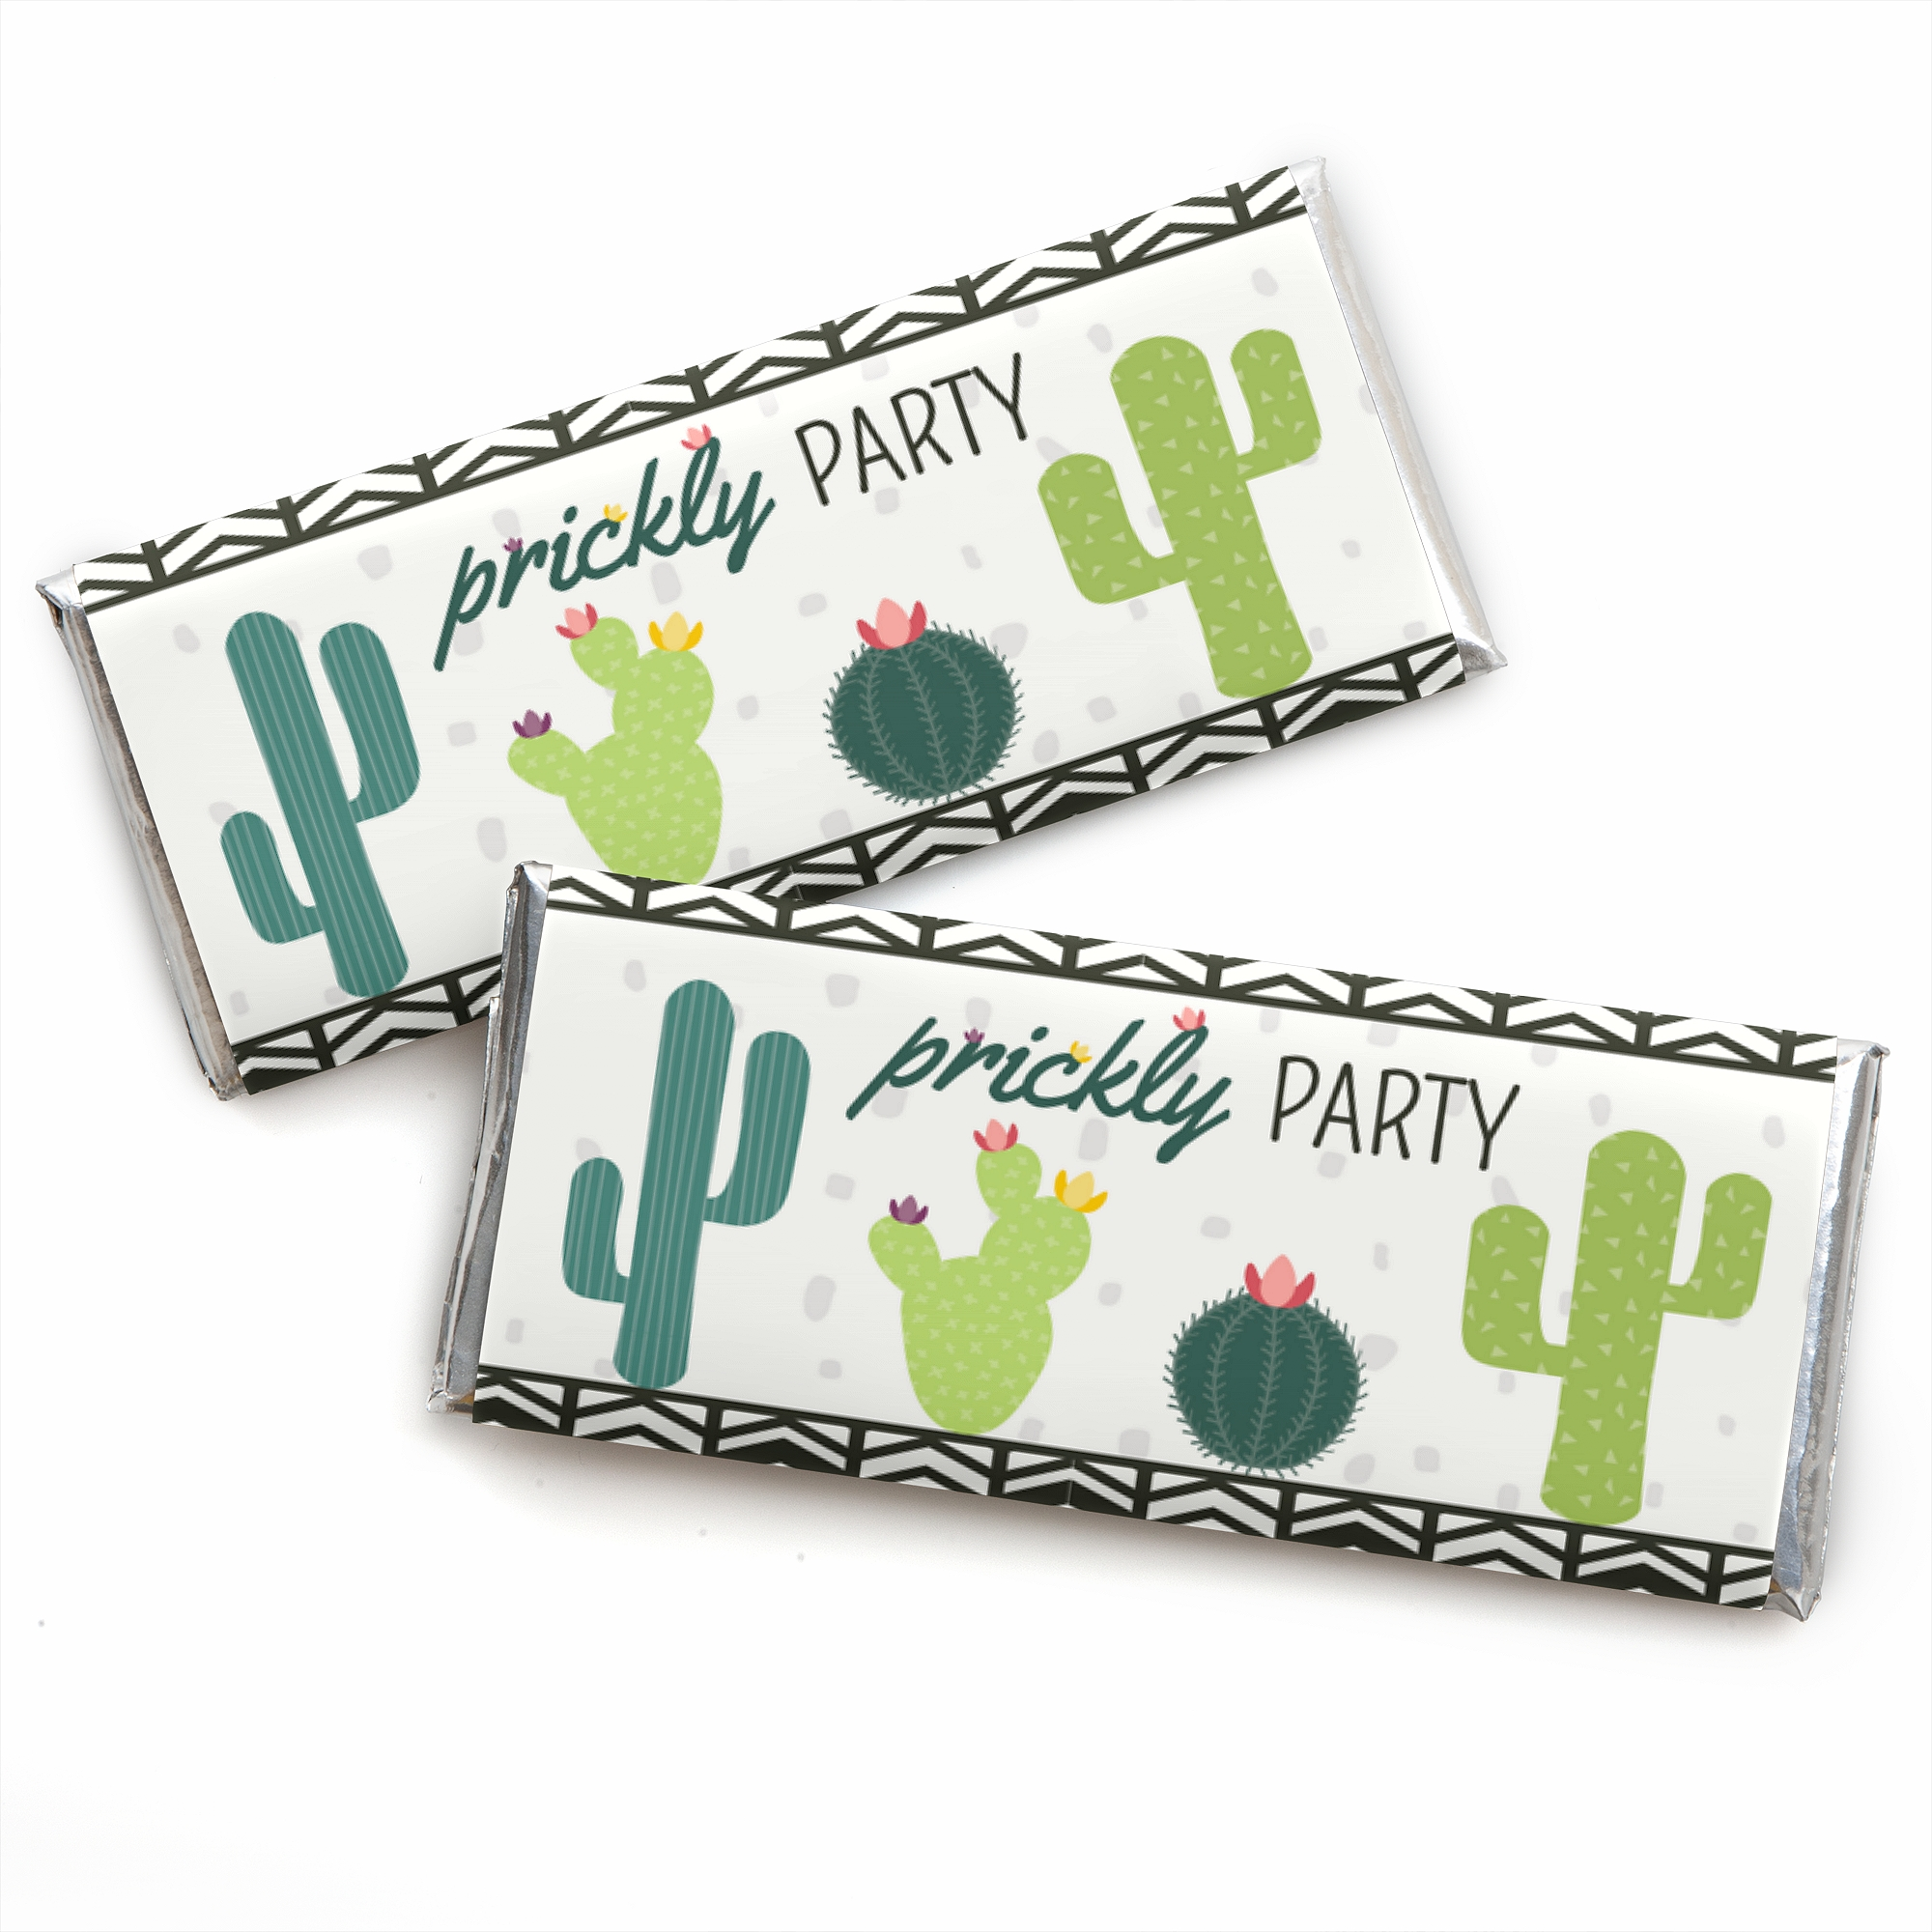 Prickly Cactus Party - Candy Bar Wrapper Fiesta Party Favors - Set of 24